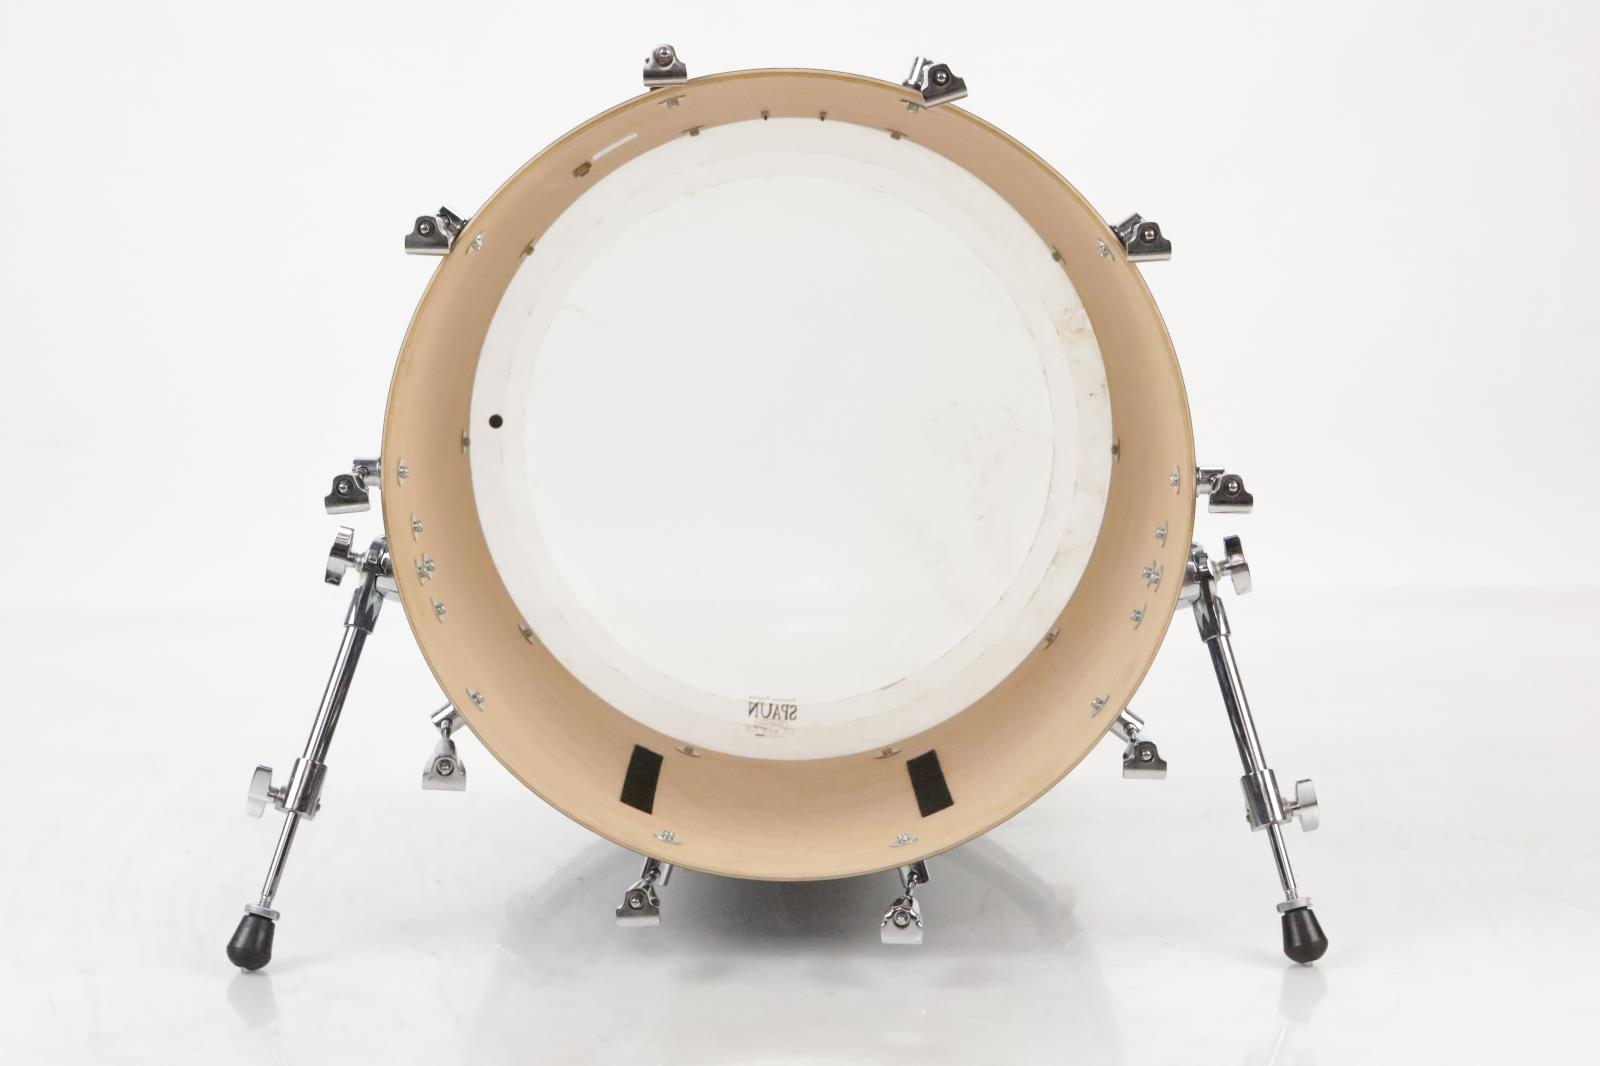 spaun 22x20 kick bass drum owned by fall out boy 35964 techno empire. Black Bedroom Furniture Sets. Home Design Ideas